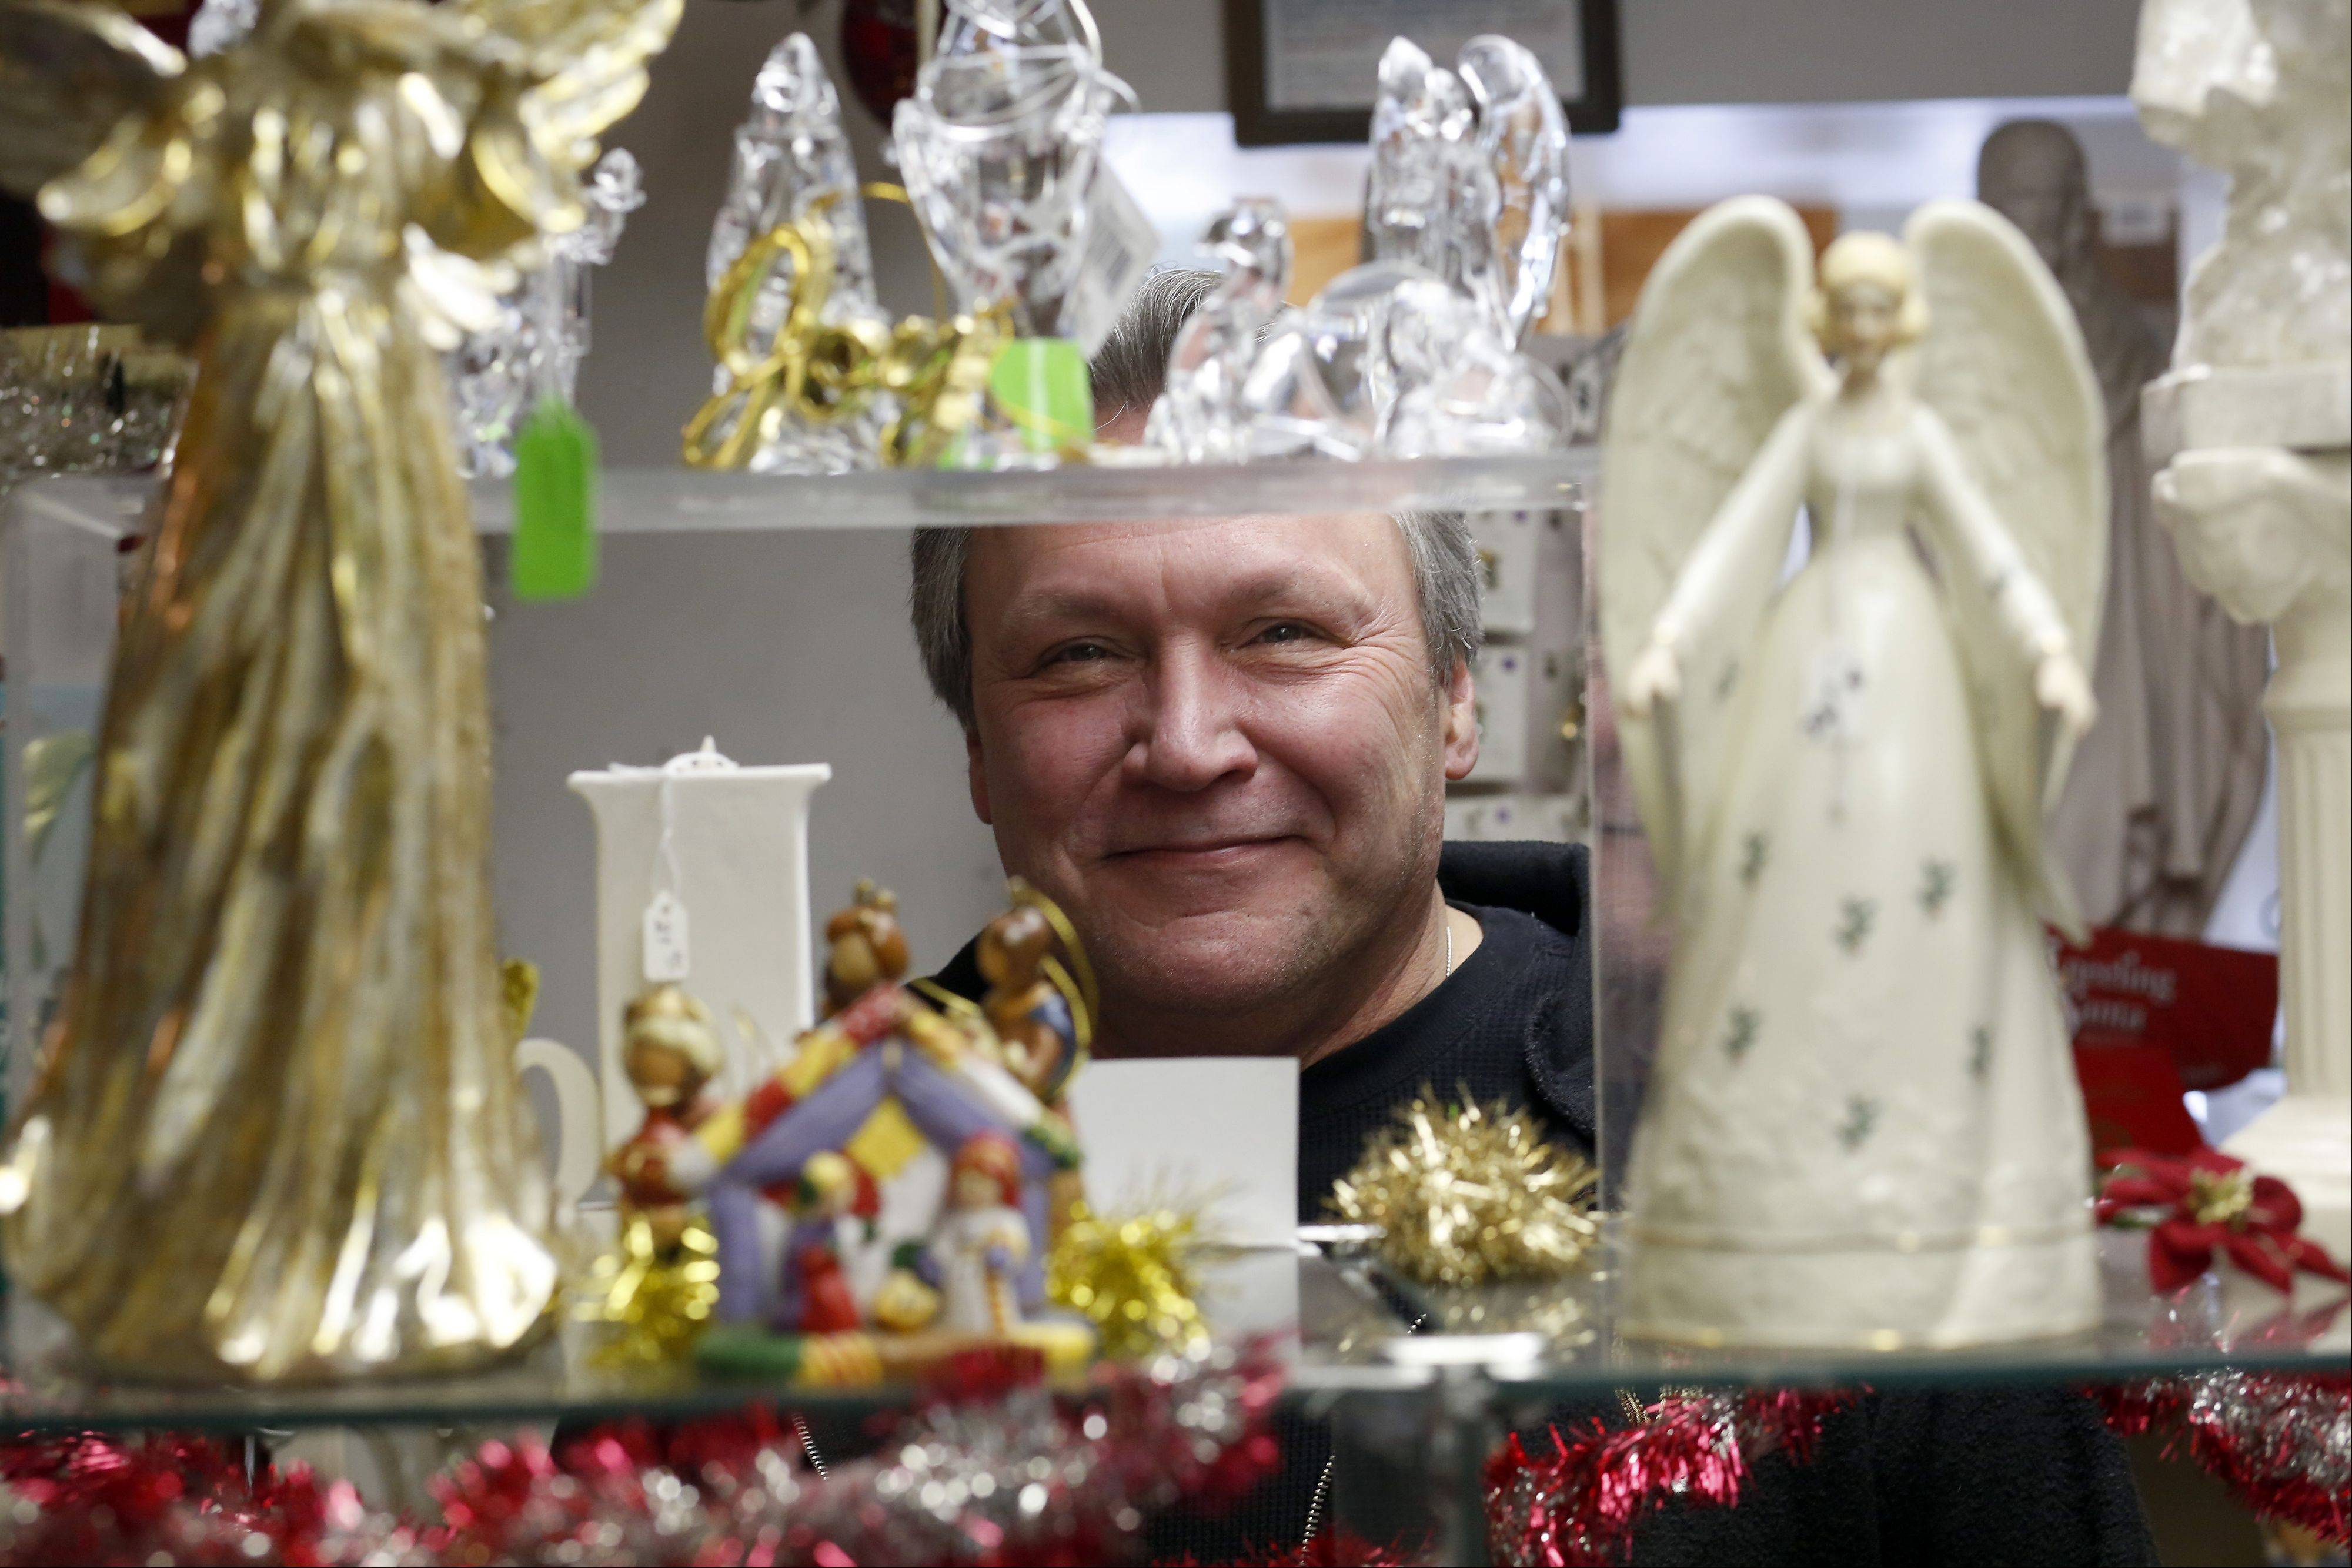 Seen through a host of angel figurines is Michael Kulpin, the operator of Angel Kisses in St. Charles.